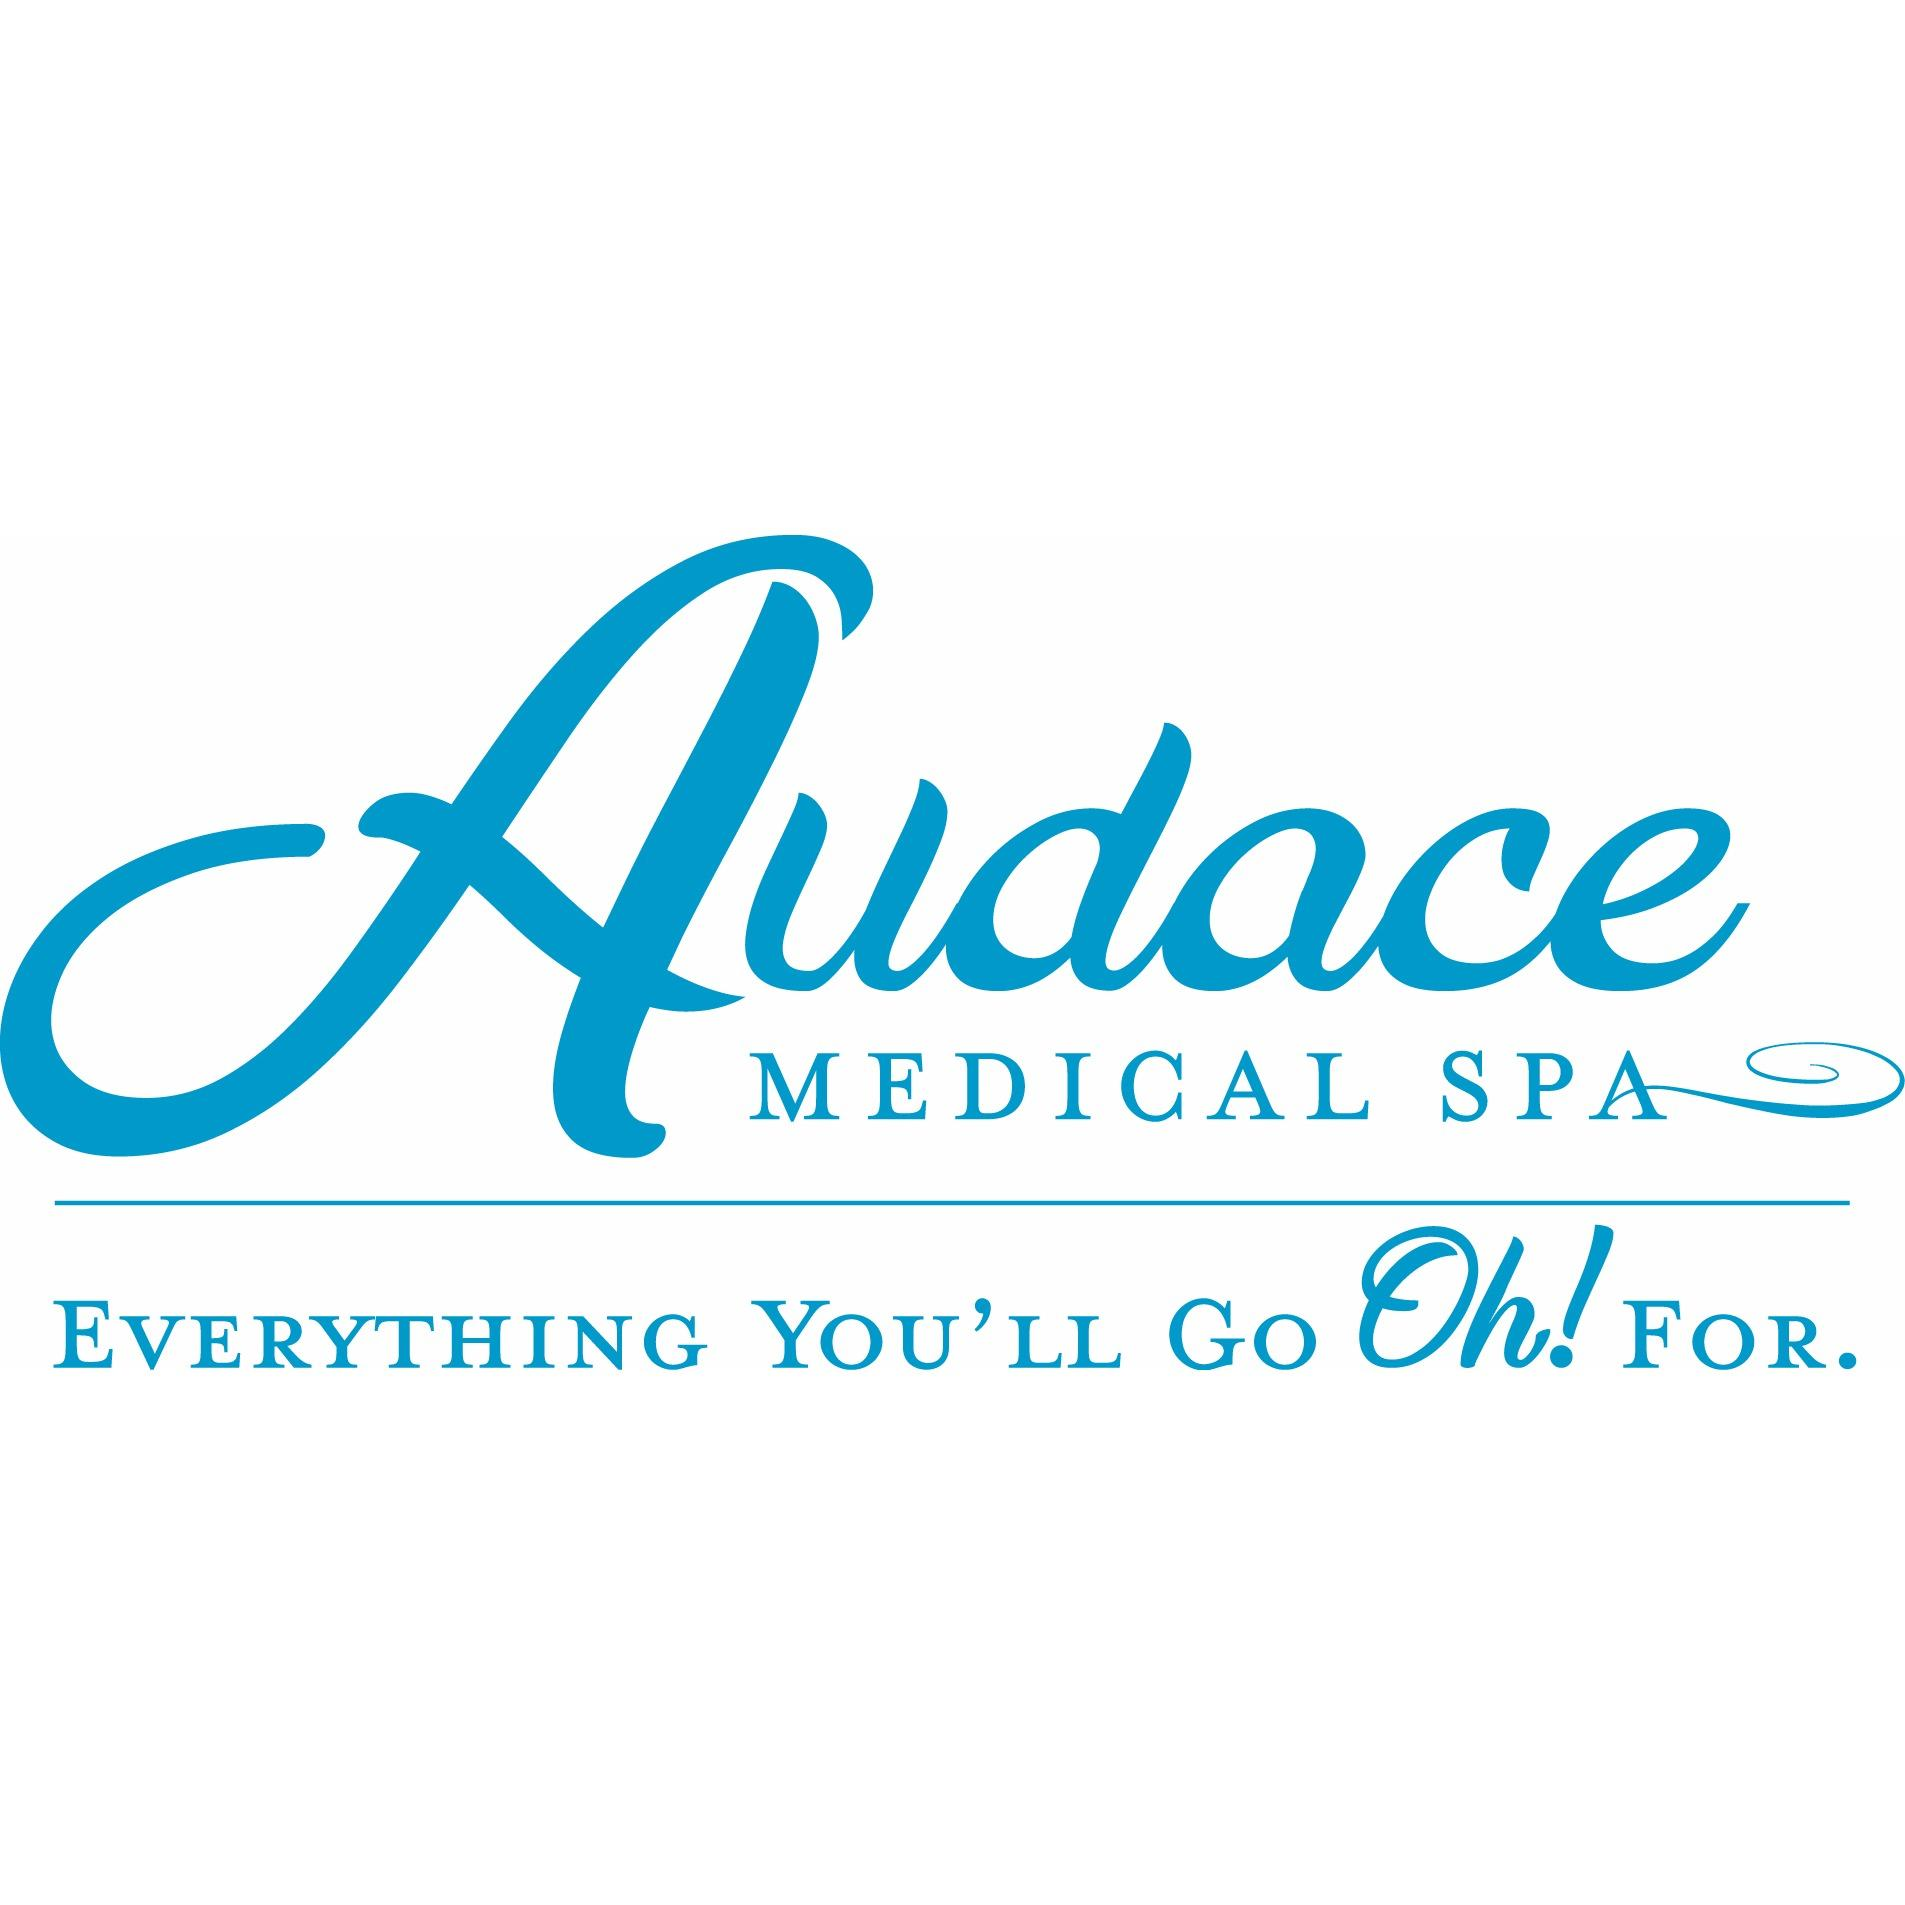 Audace Medical Spa